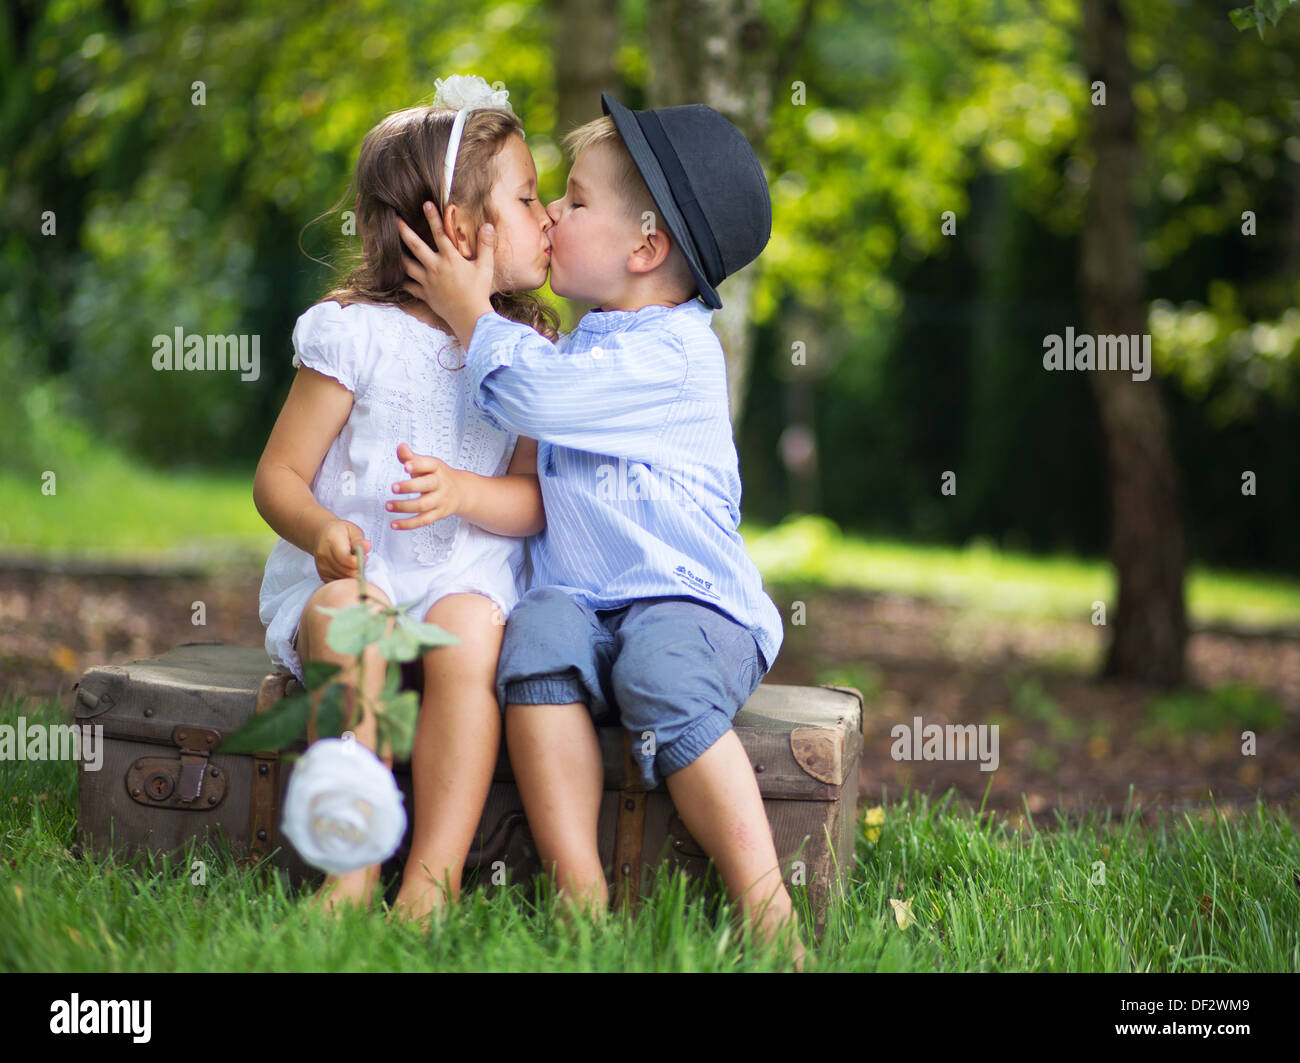 cute couple of kids kissing each other stock photo: 60915017 - alamy